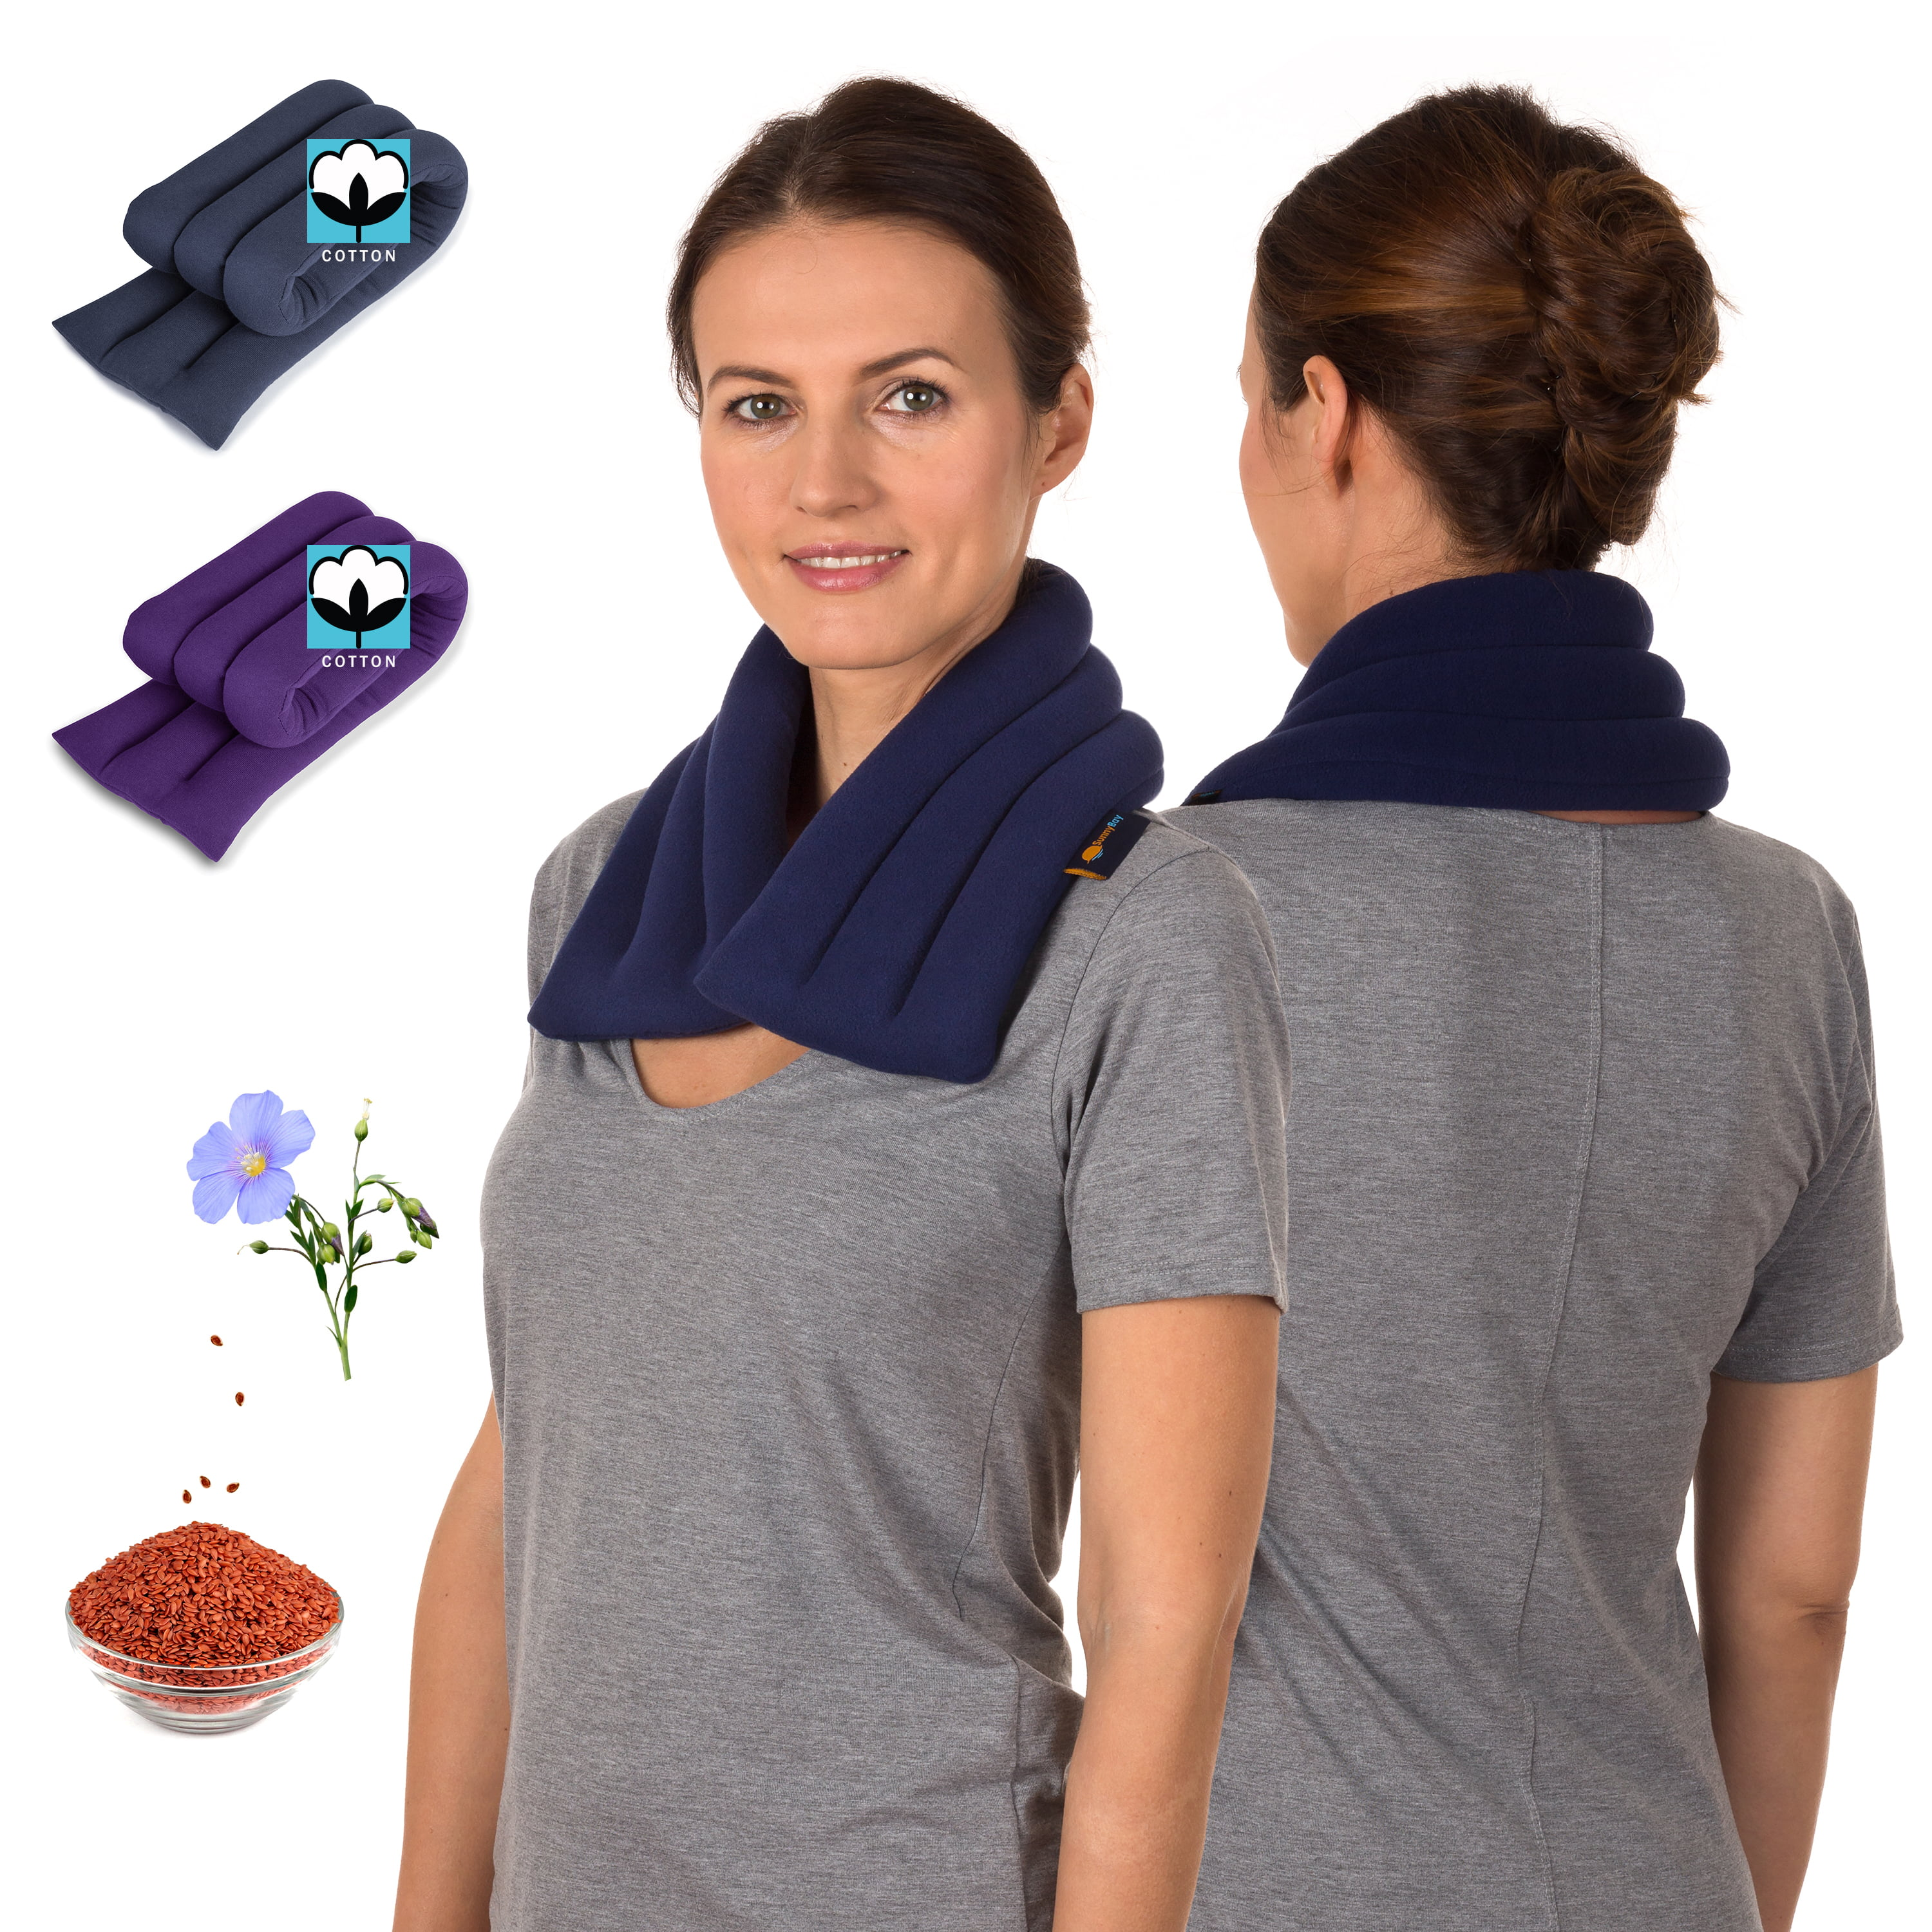 Sunny Bay Light Weight Heated Neck Wrap, Extra Long Neck Heating Wrap, Flax Seeds Filled, Best For Neck Pain Relief